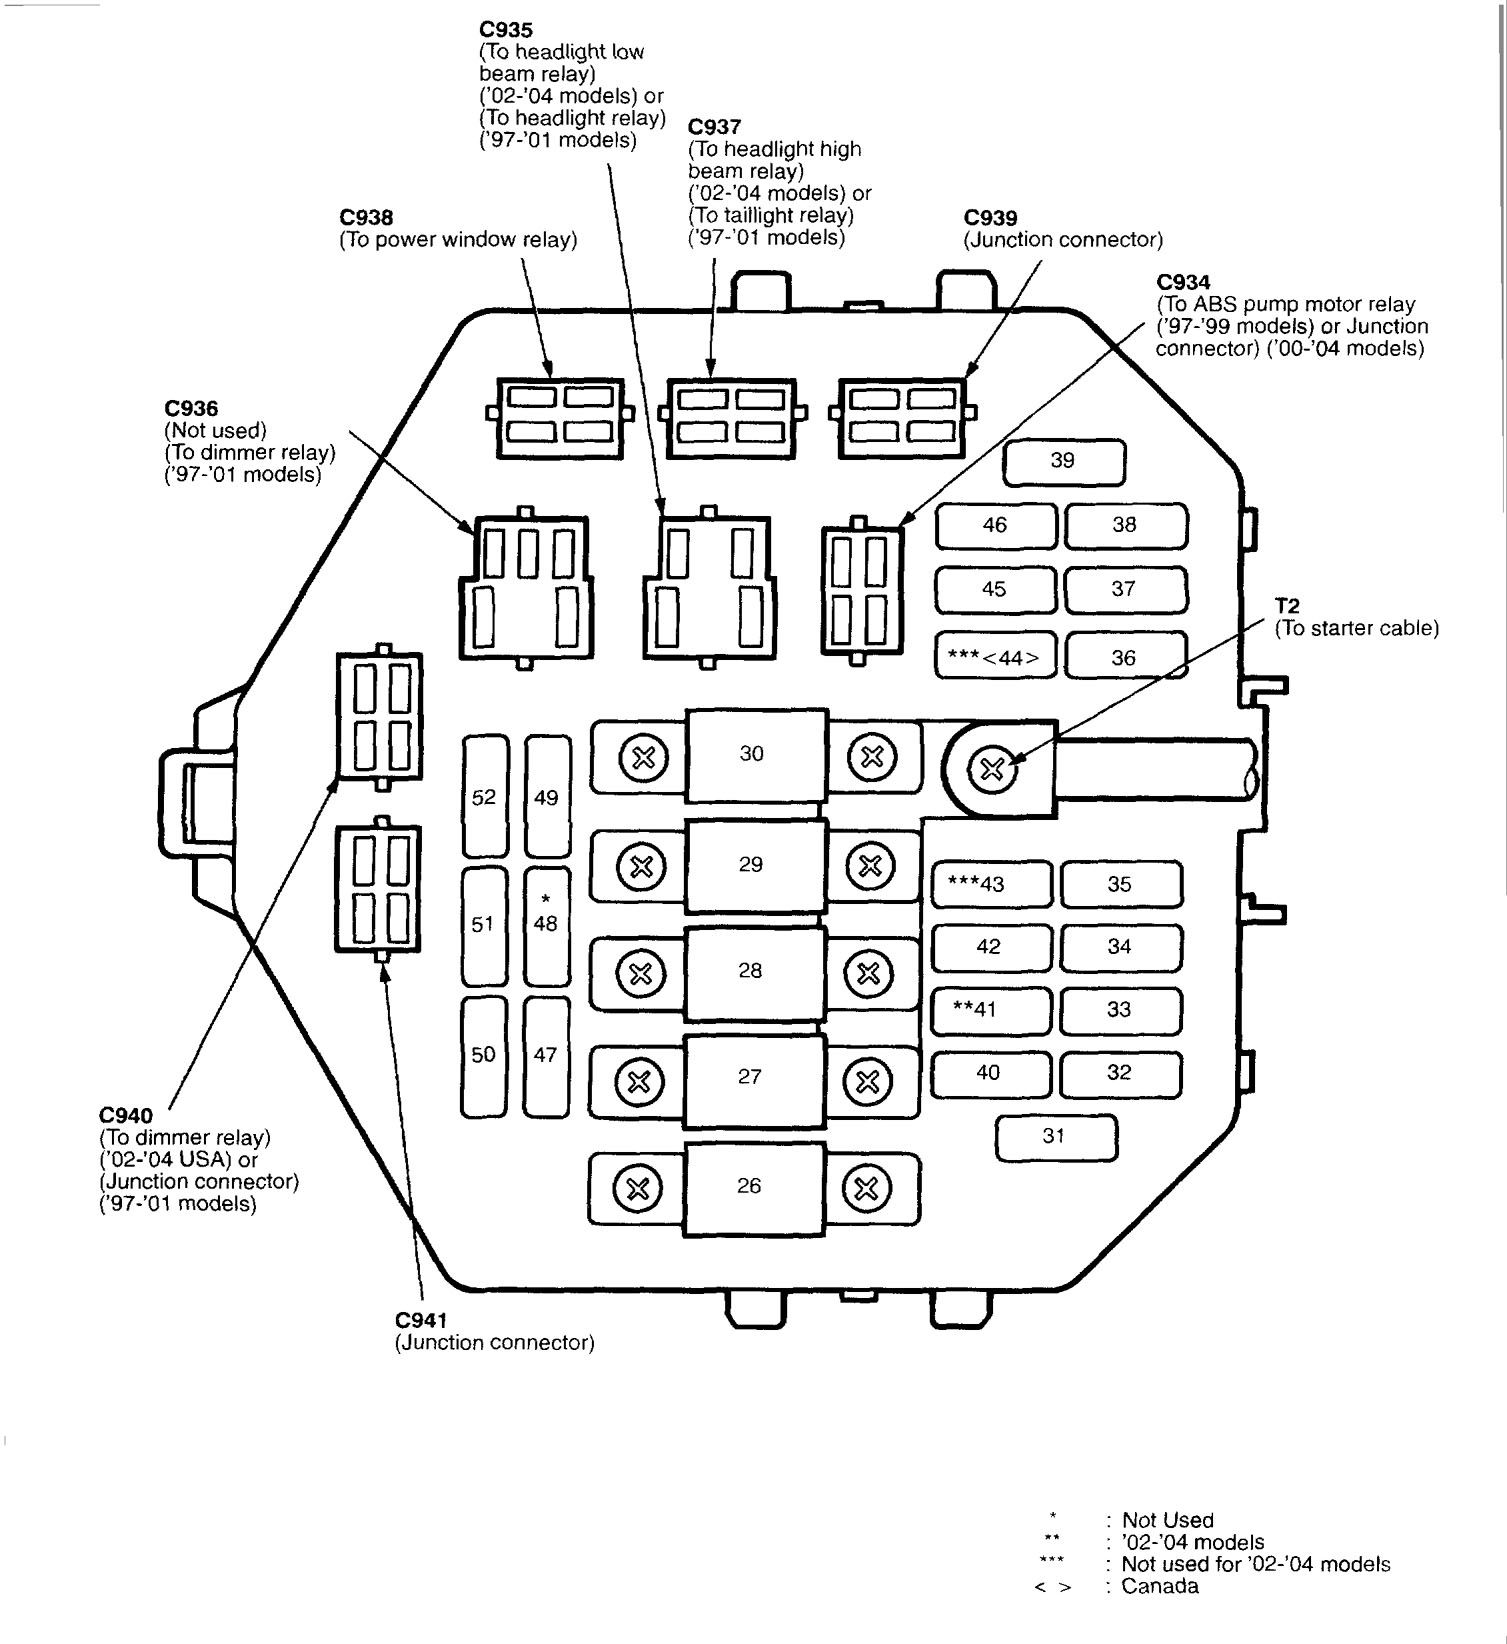 Acura Nsx 1997 2004 Wiring Diagrams Fuse Panel Carknowledge 2000 Dodge Intrepid Box Diagram